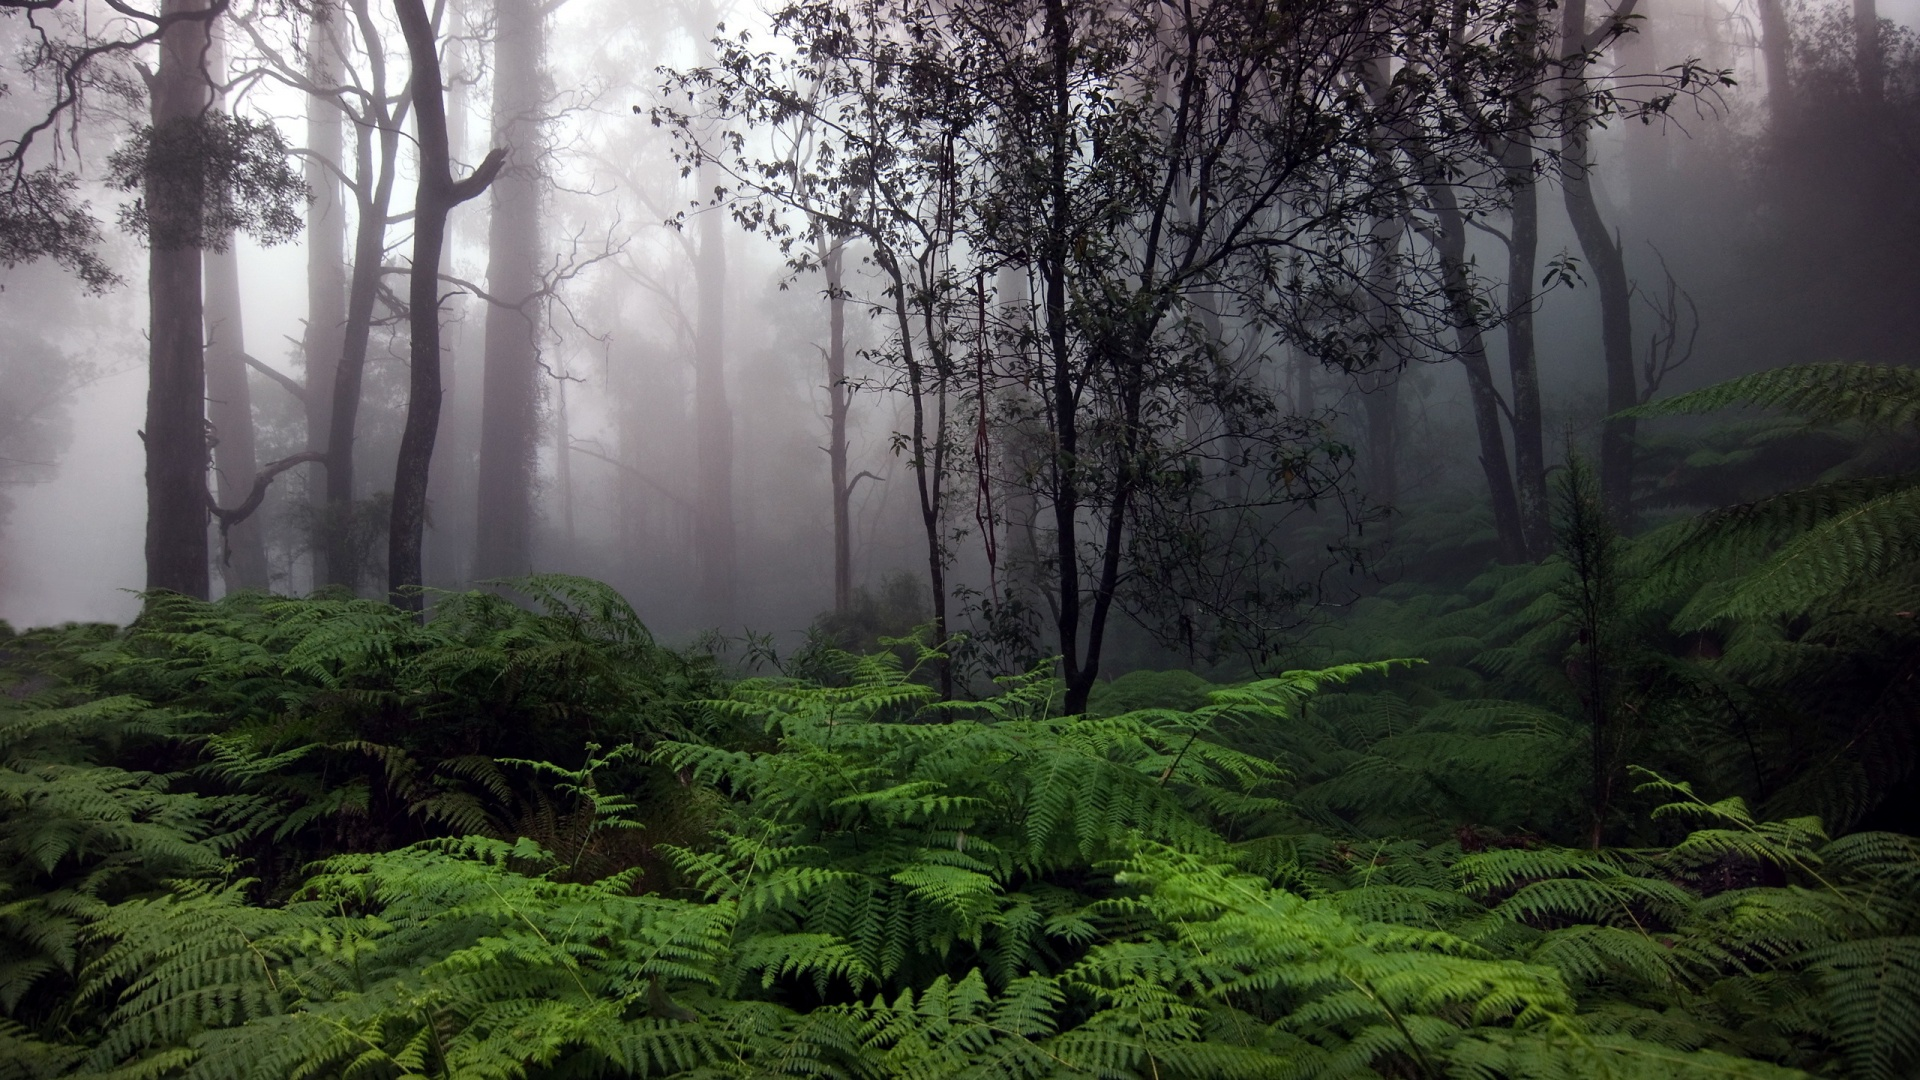 Forest Wallpaper 1920x1080 HD Wallpaper Background Images 1920x1080